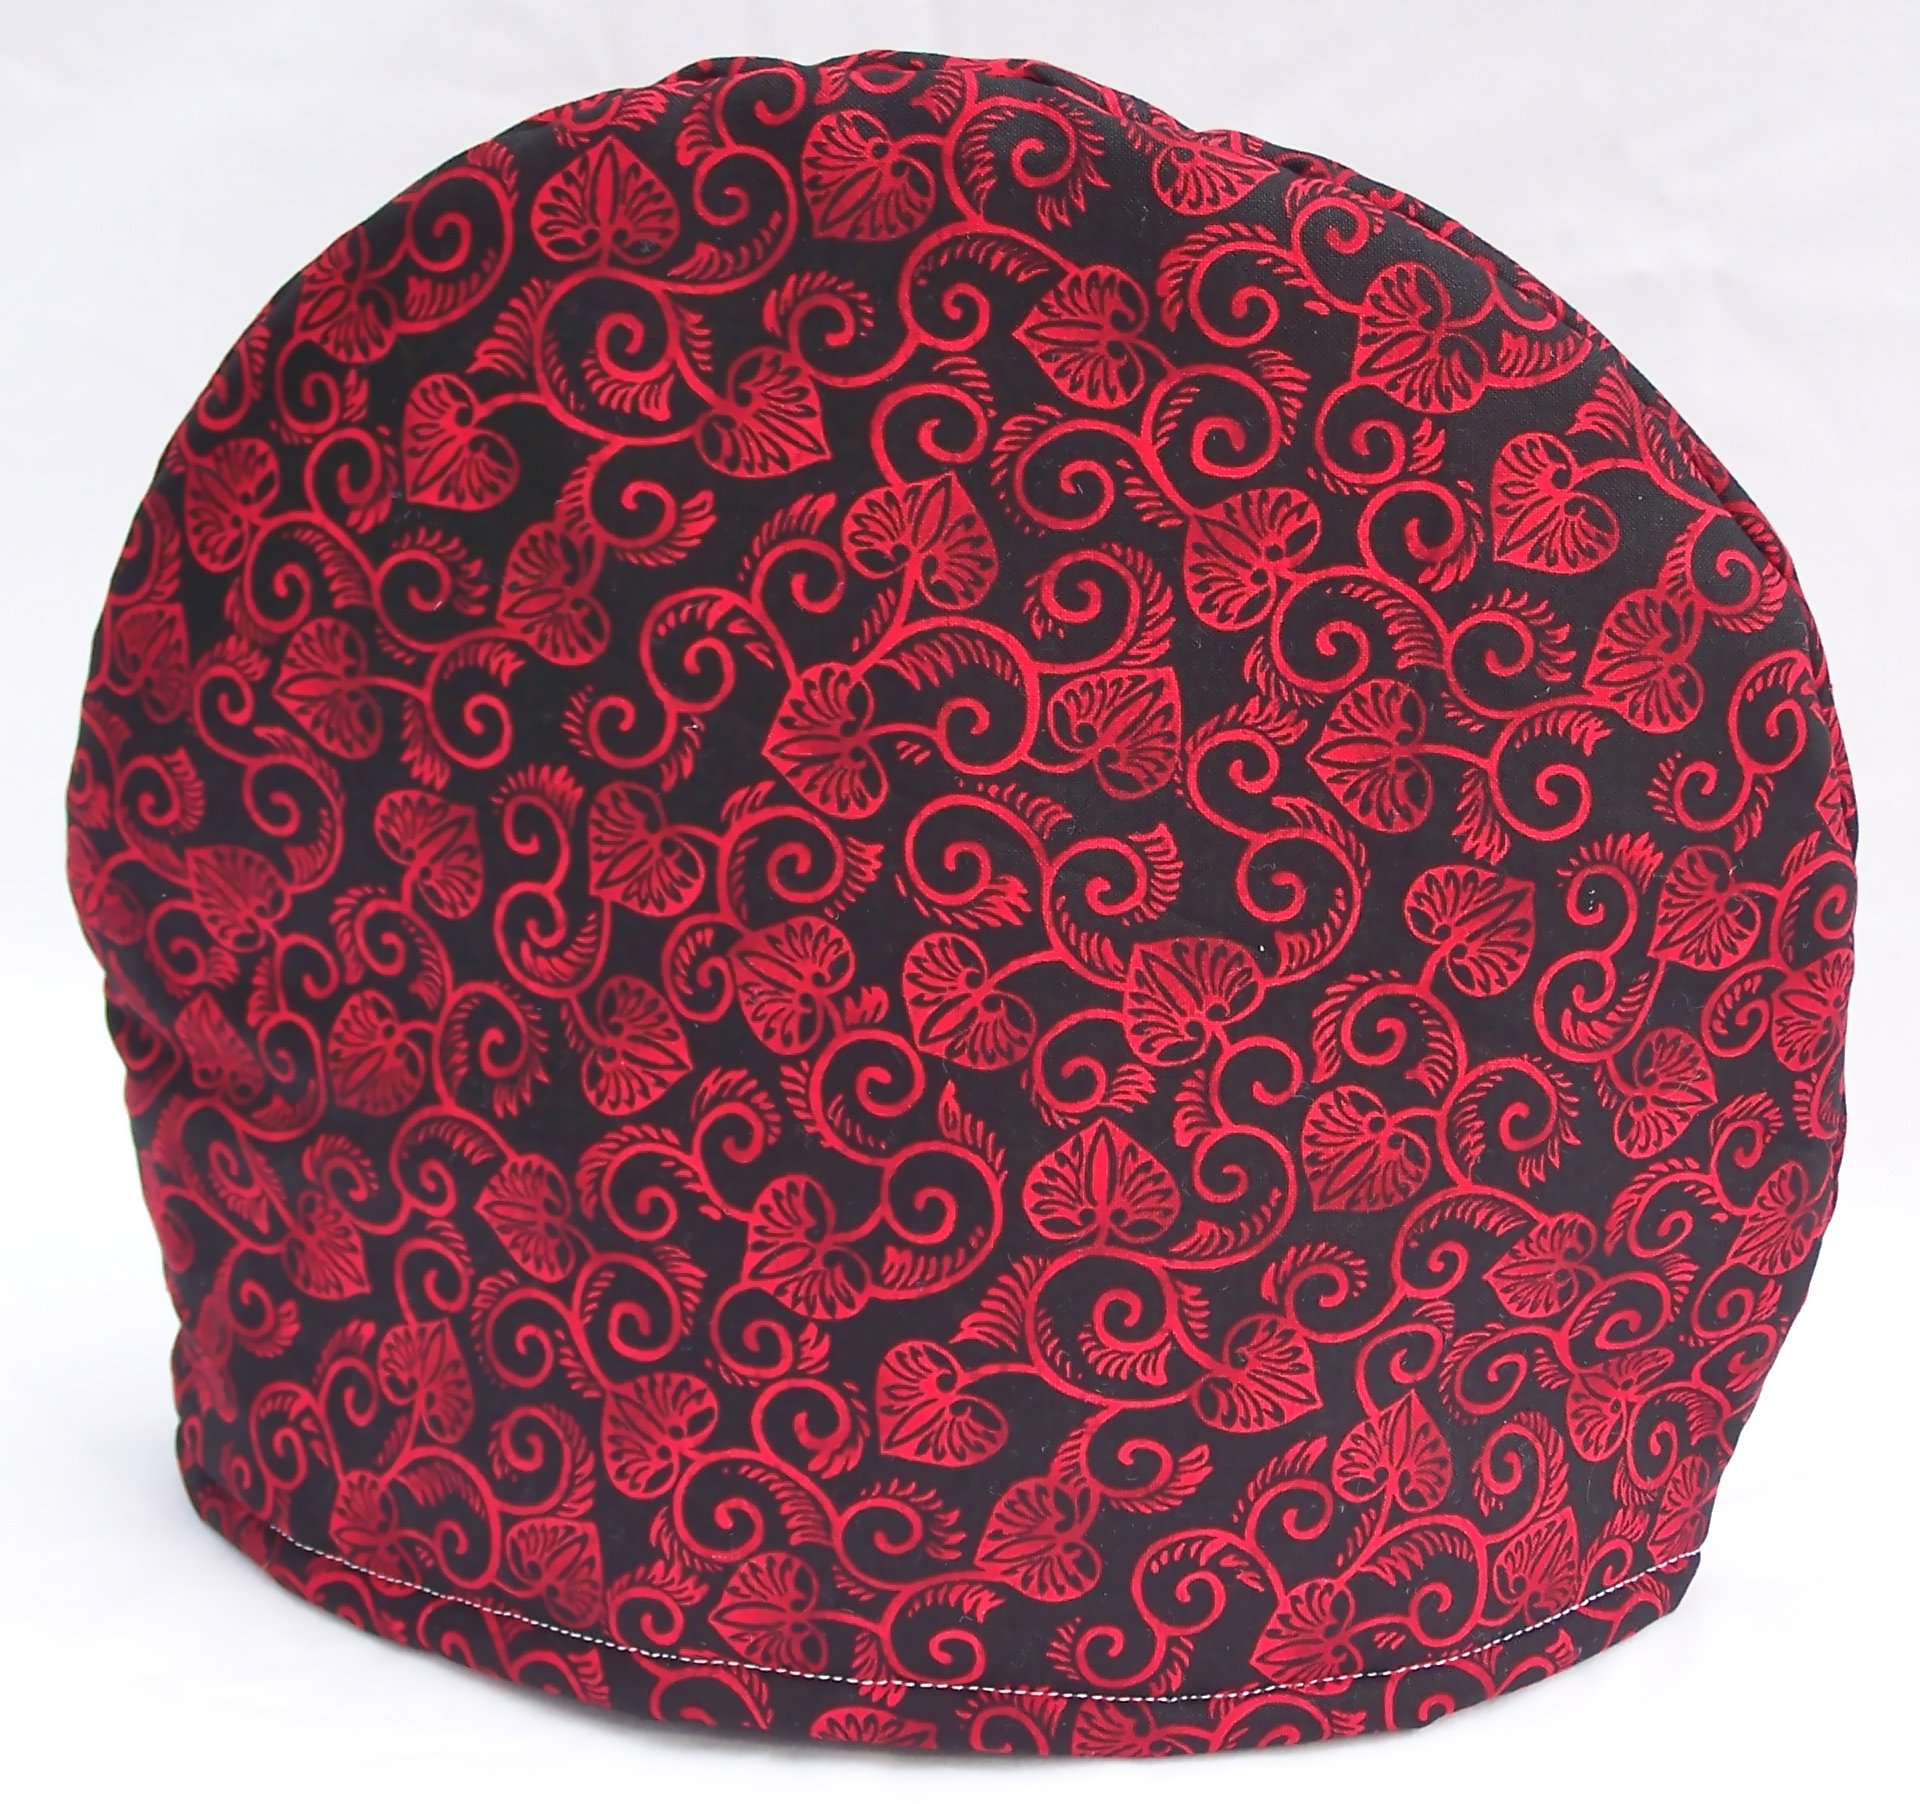 Fabric Tea Cozy - Lined and Padded For Warmth - Red and Black French Toile by dsb